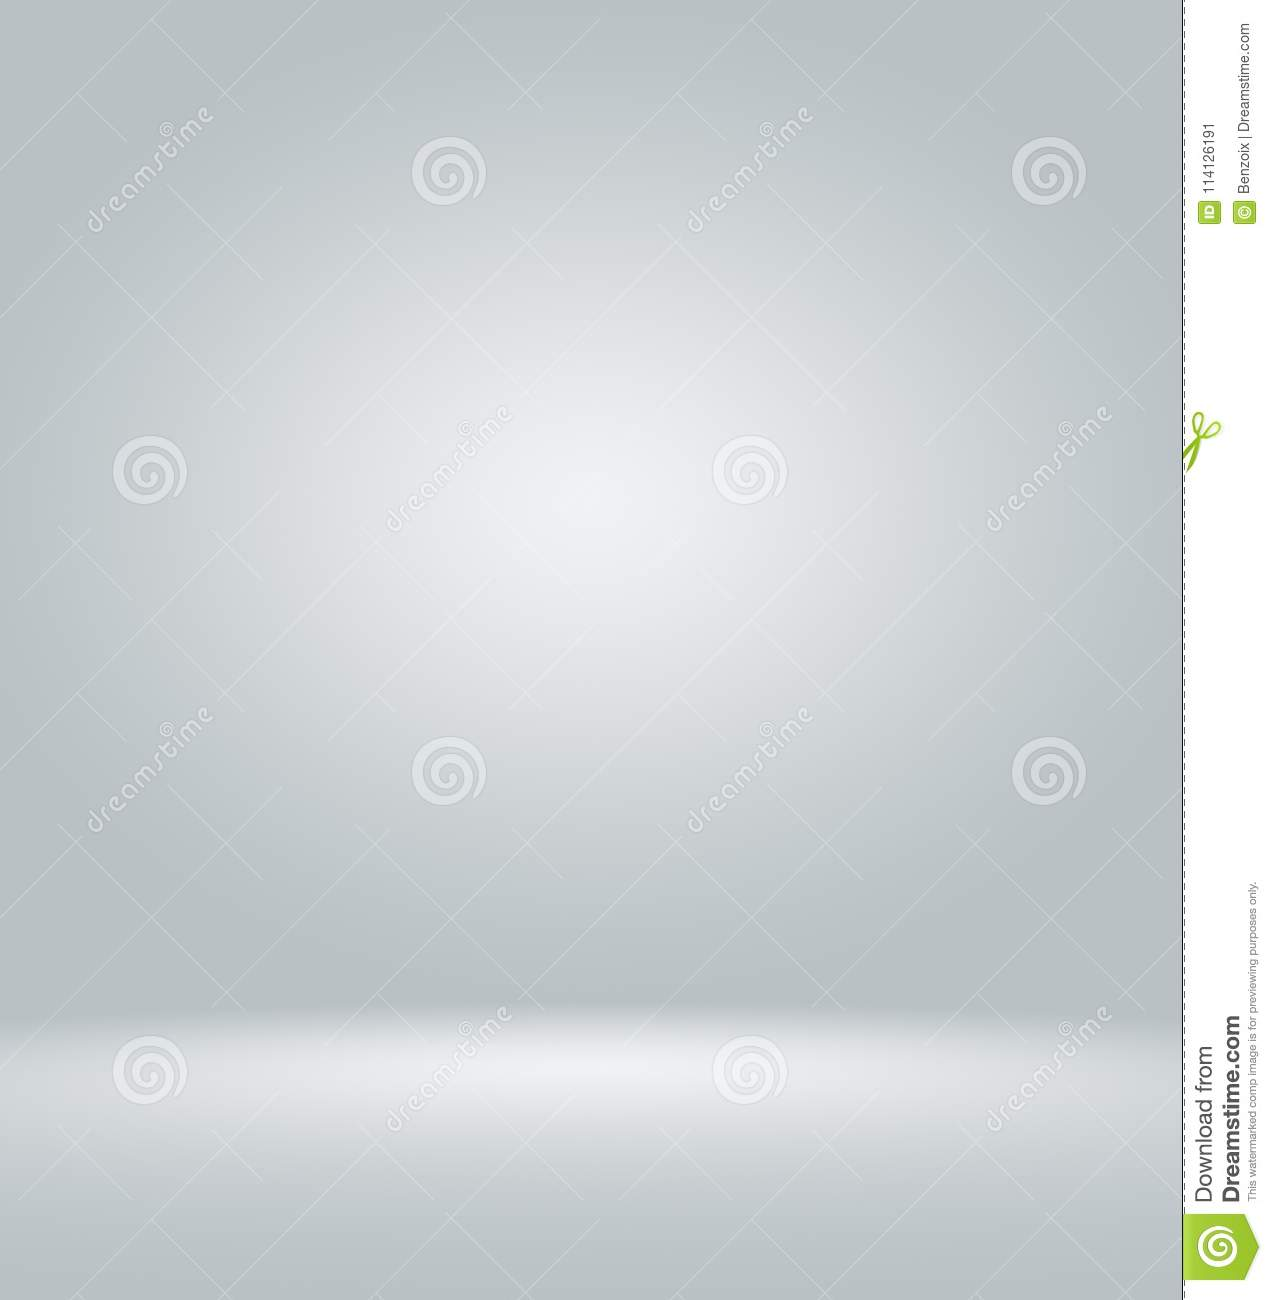 Clear Empty Photographer Studio Background Abstract